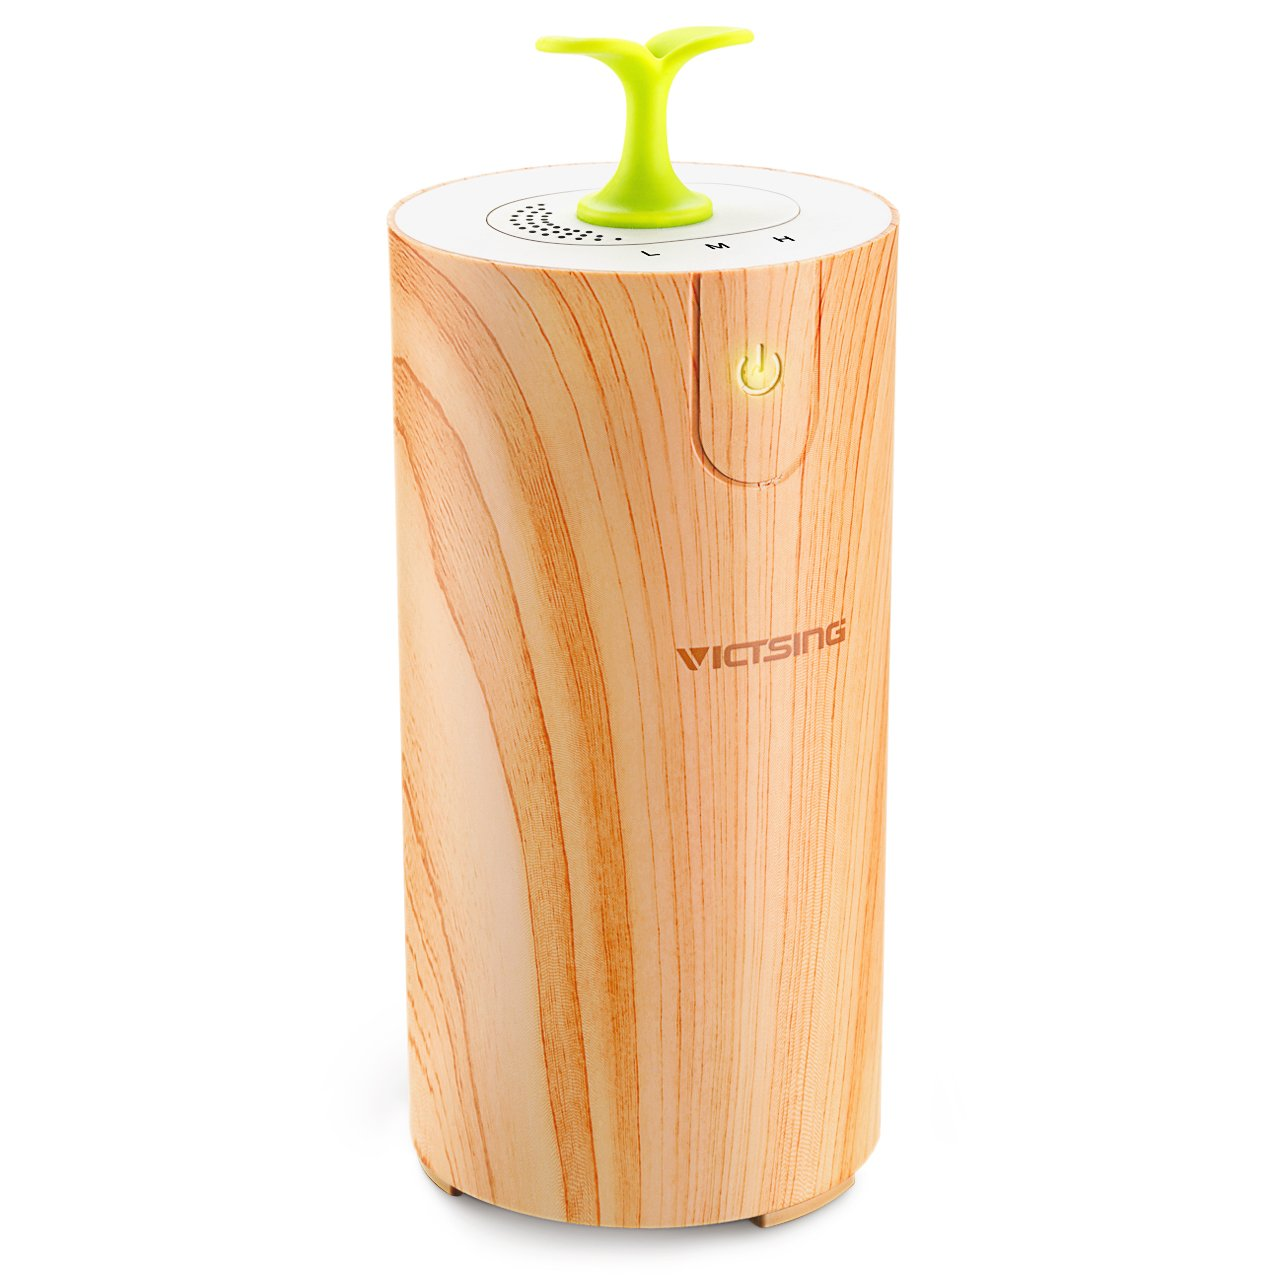 VicTsing Car Oil Diffuser, [ Wood Grain ] Essential Waterless Oil Diffuser, USB Car Aroma Diffuser for Car, Small Bedroom, Pets room, Bathroom, Office and Home